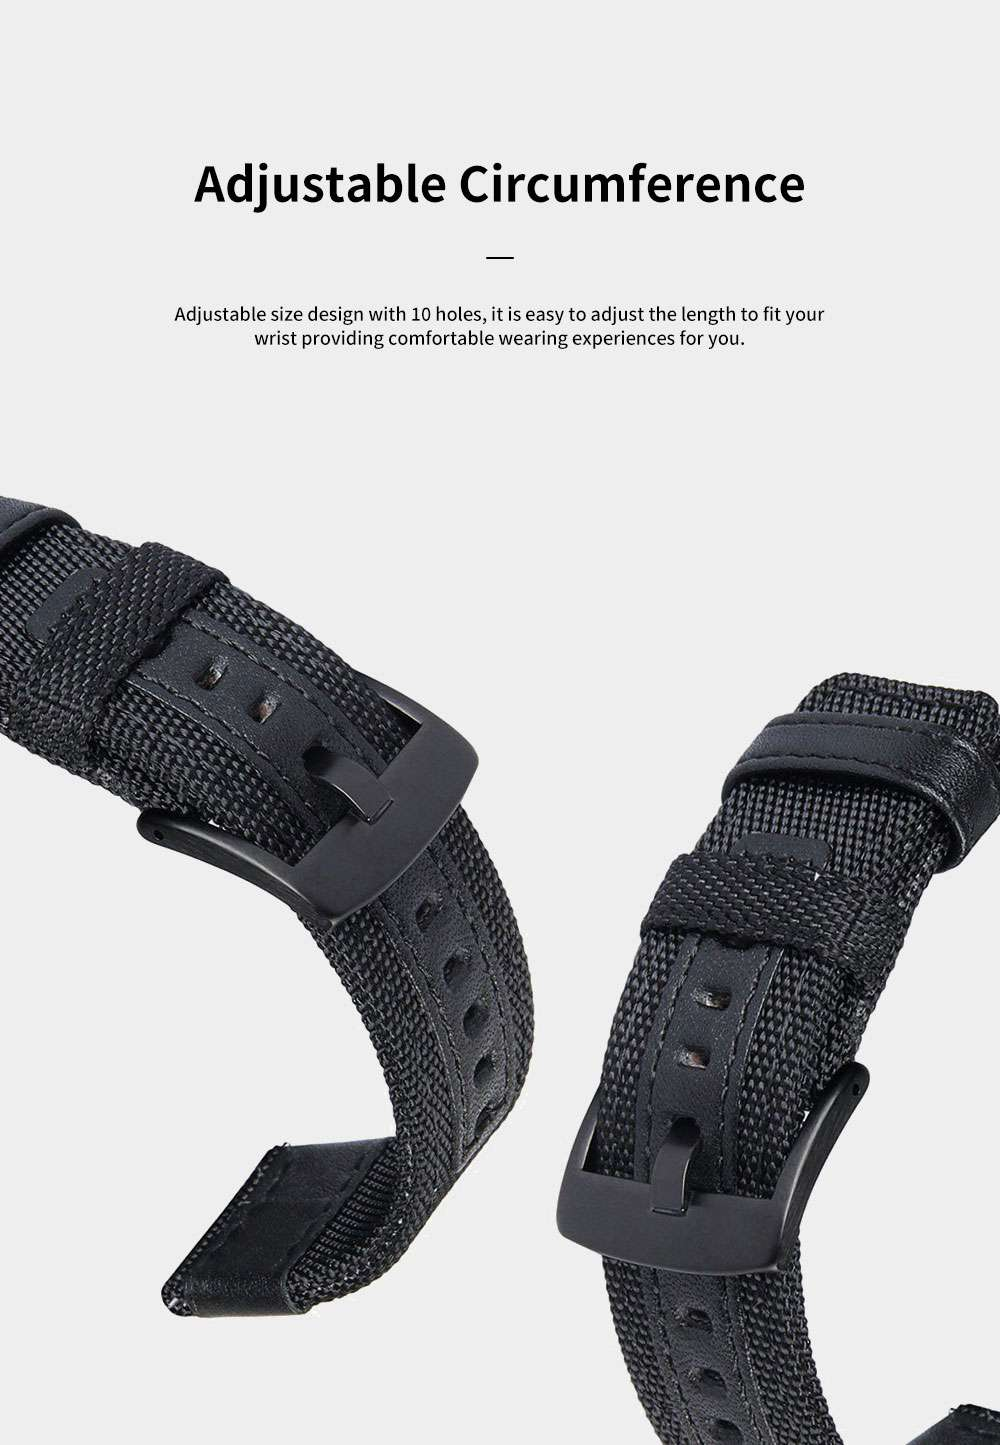 Gear S3 Nylon Bands 22 mm Woven Nylon Replacement Strap Sport Wristband Bracelet with Steel Metal Buckle for Samsung Gear S3 Classic, Gear S3 Frontier, Moto 360 2nd Gen 46mm 4